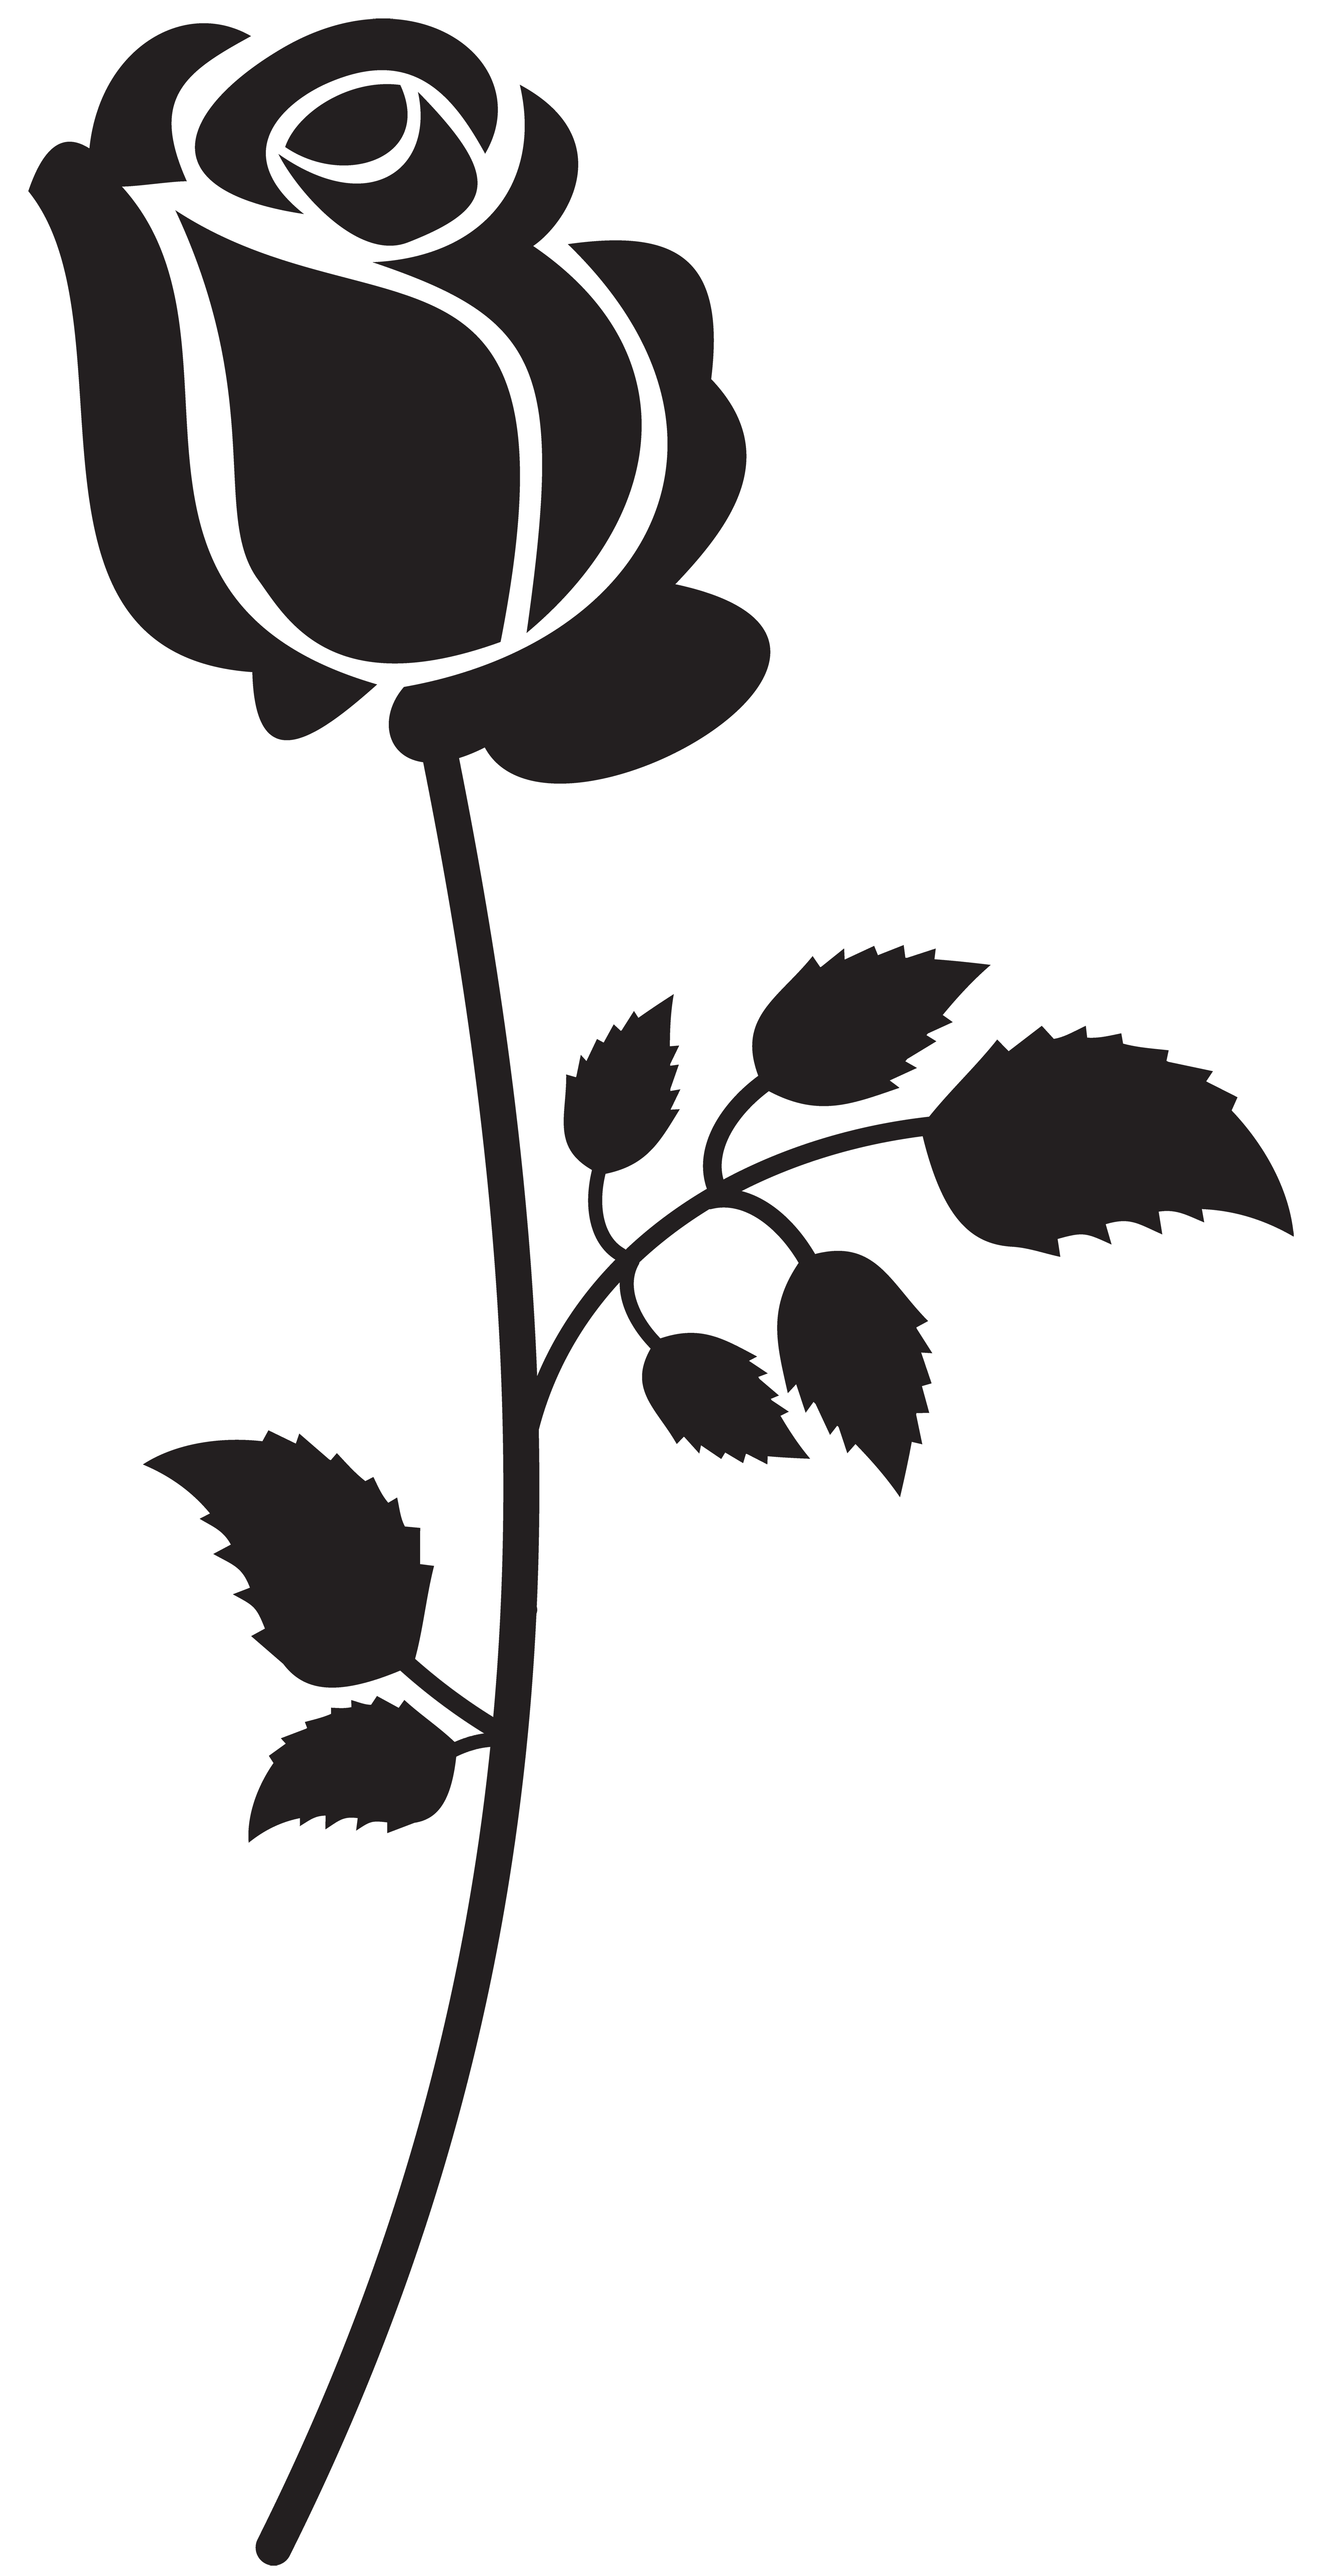 Flowers silhouette png. Rose clip art image